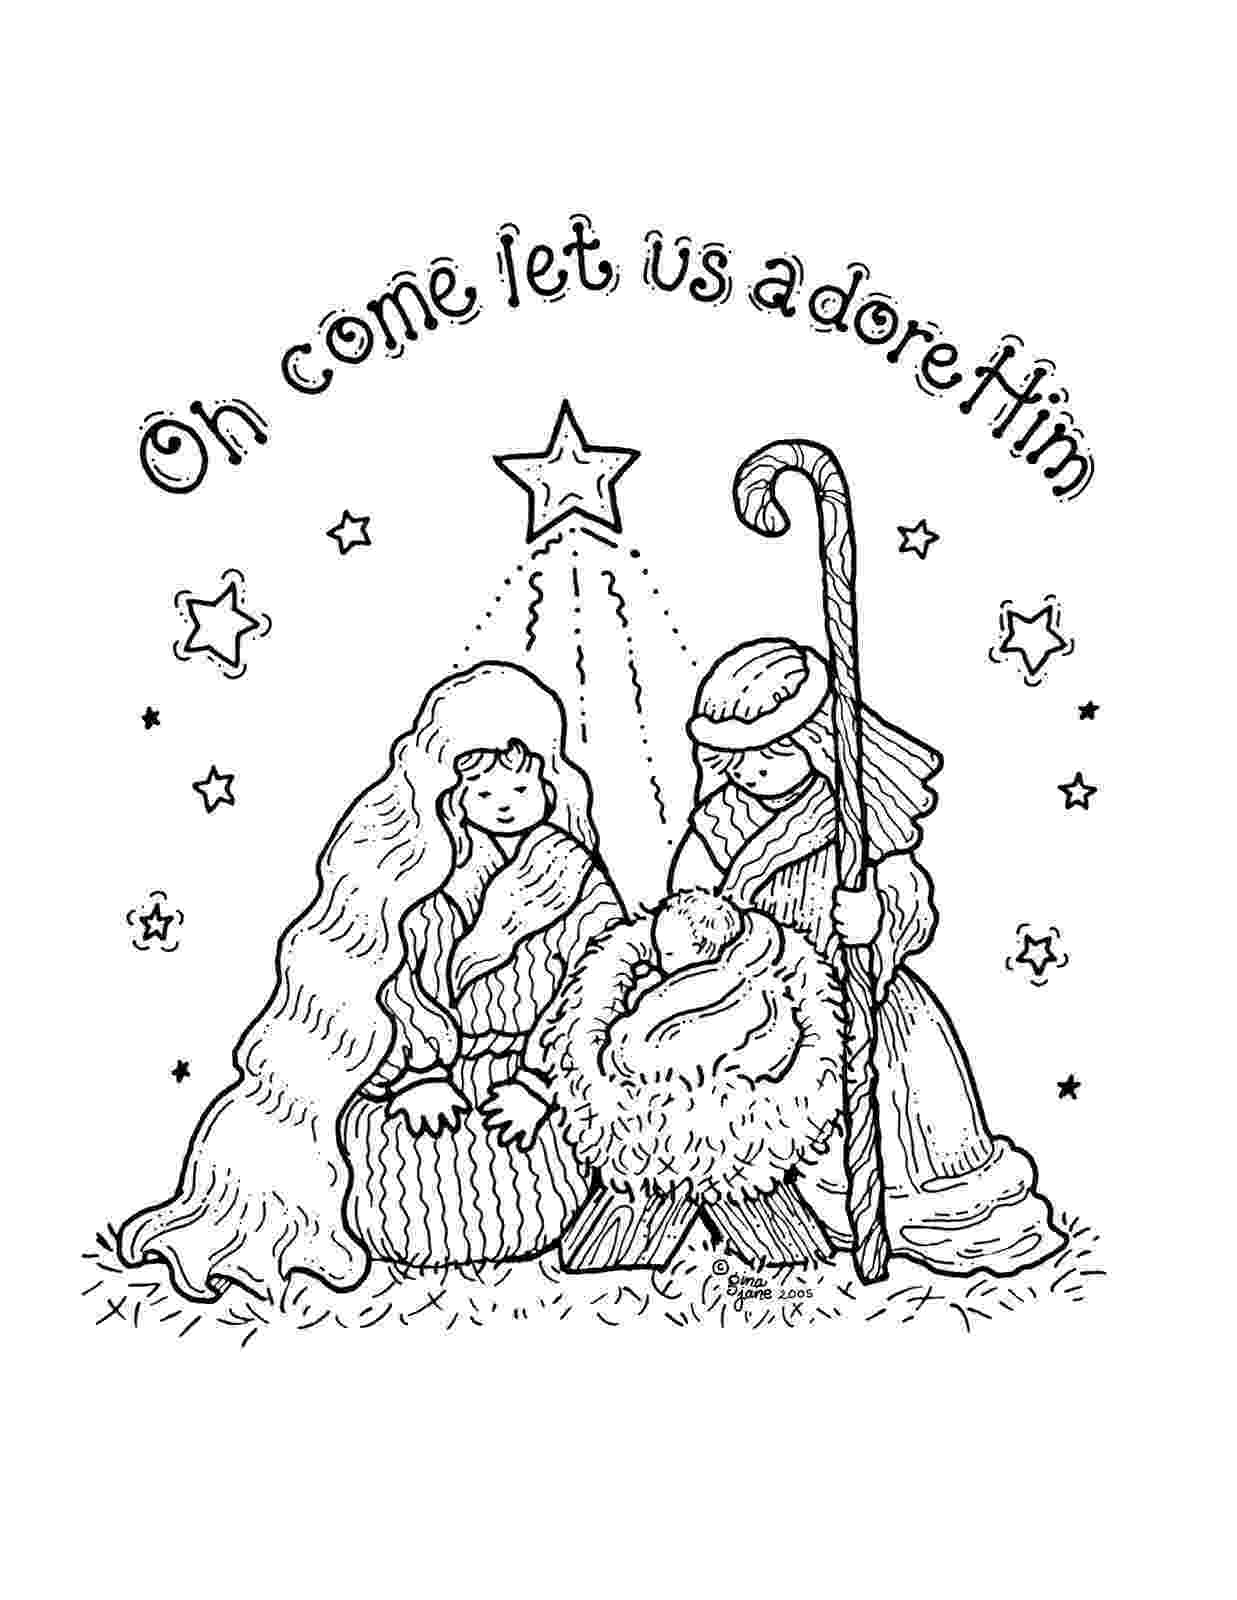 nativity scene coloring pages free printable nativity coloring pages for kids nativity scene coloring pages